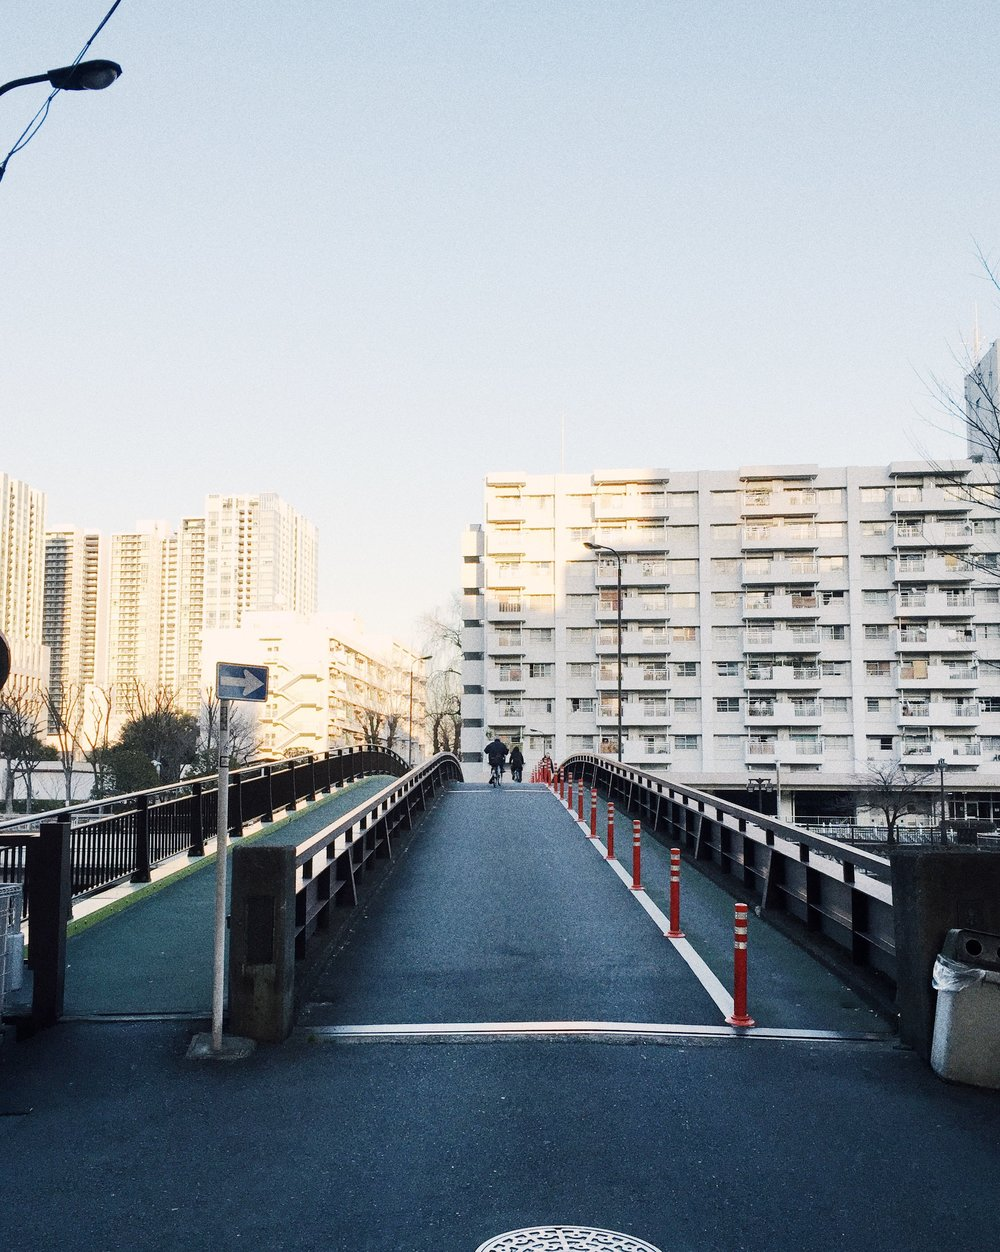 Shinagawa, Winter 2015.